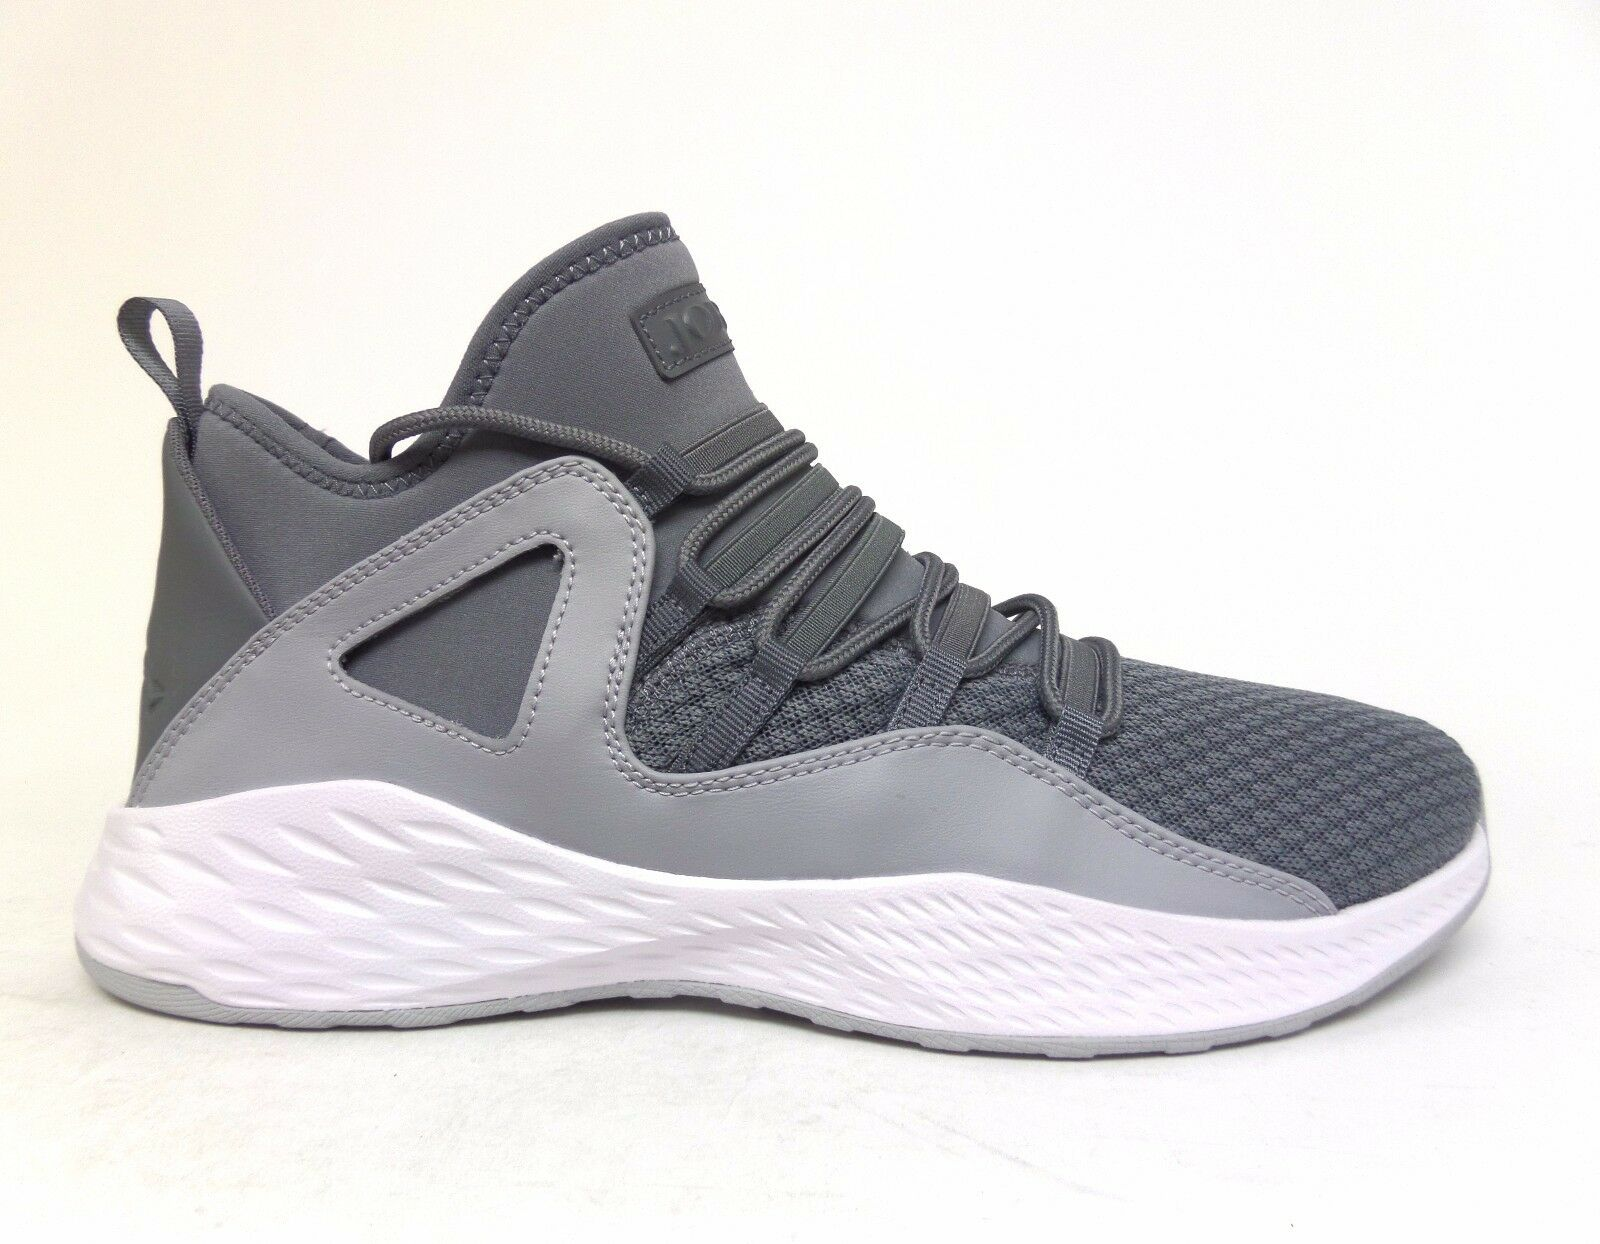 Air Jordan Men's FORMULA 23 Basketball Shoes Cool Grey/White 881465-003 b The latest discount shoes for men and women